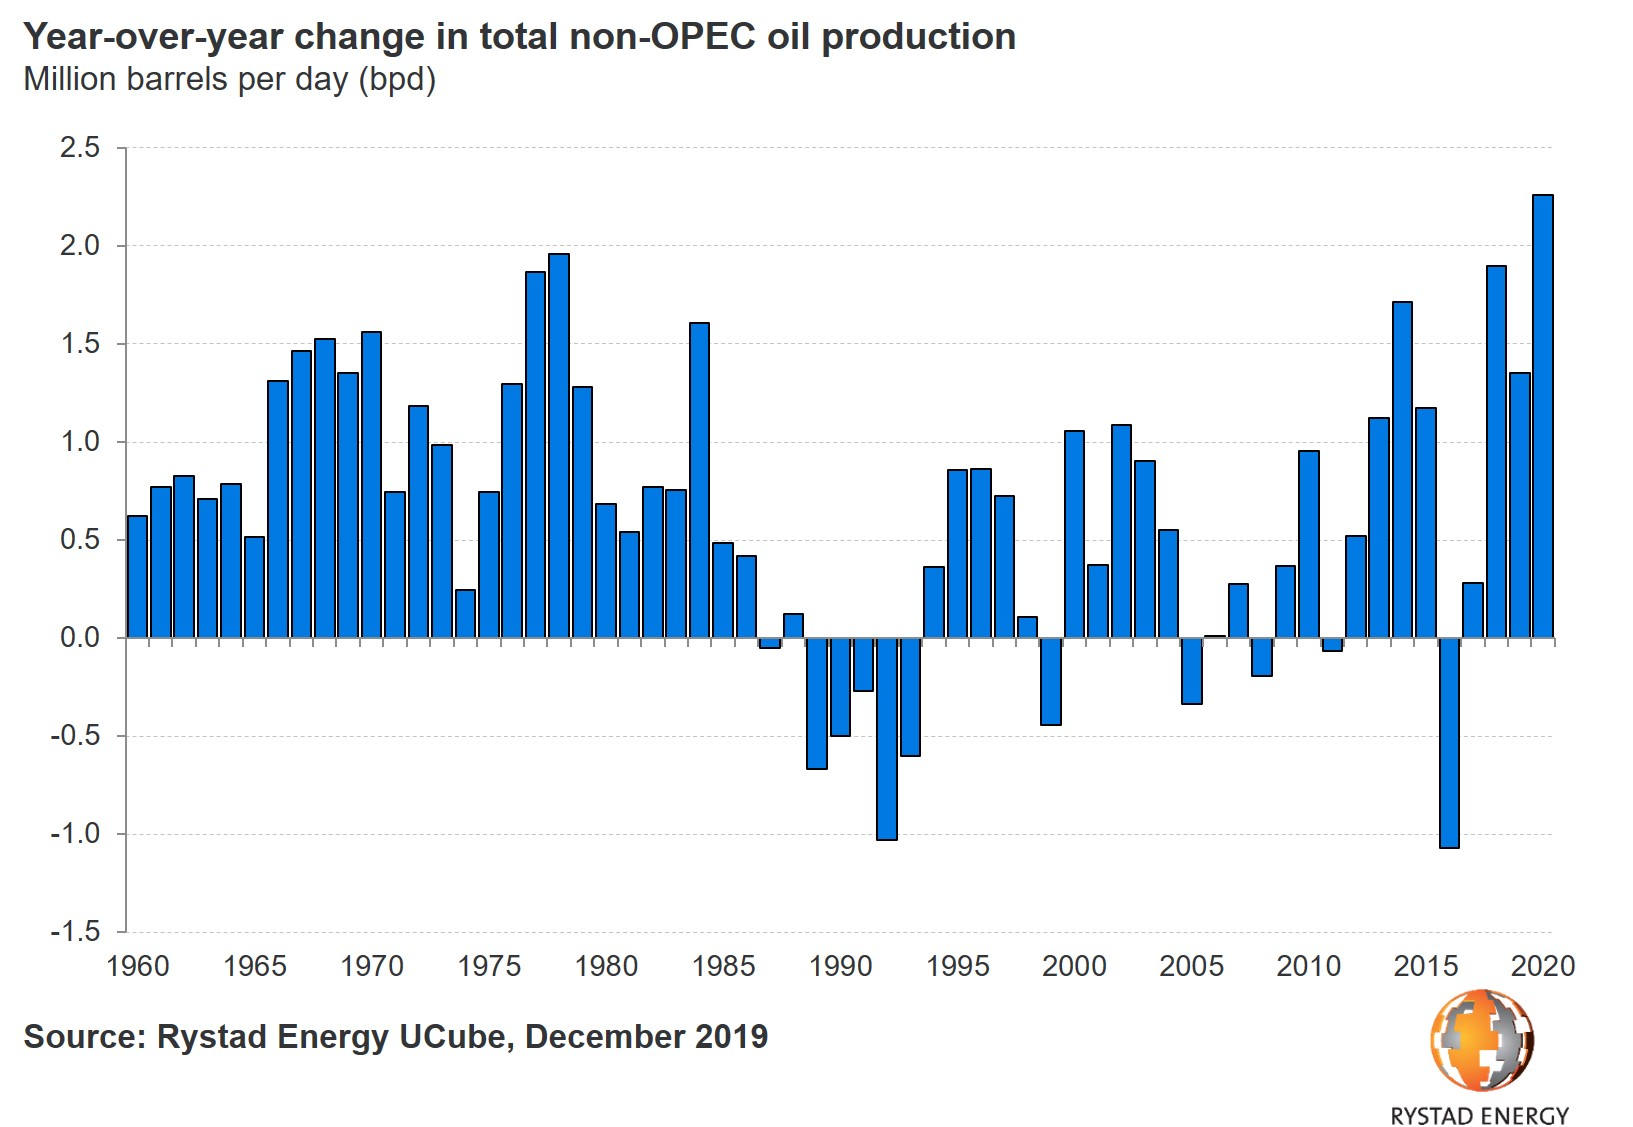 20191203_PR Chart 1 Non OPEC production growth 1960 2020.jpg